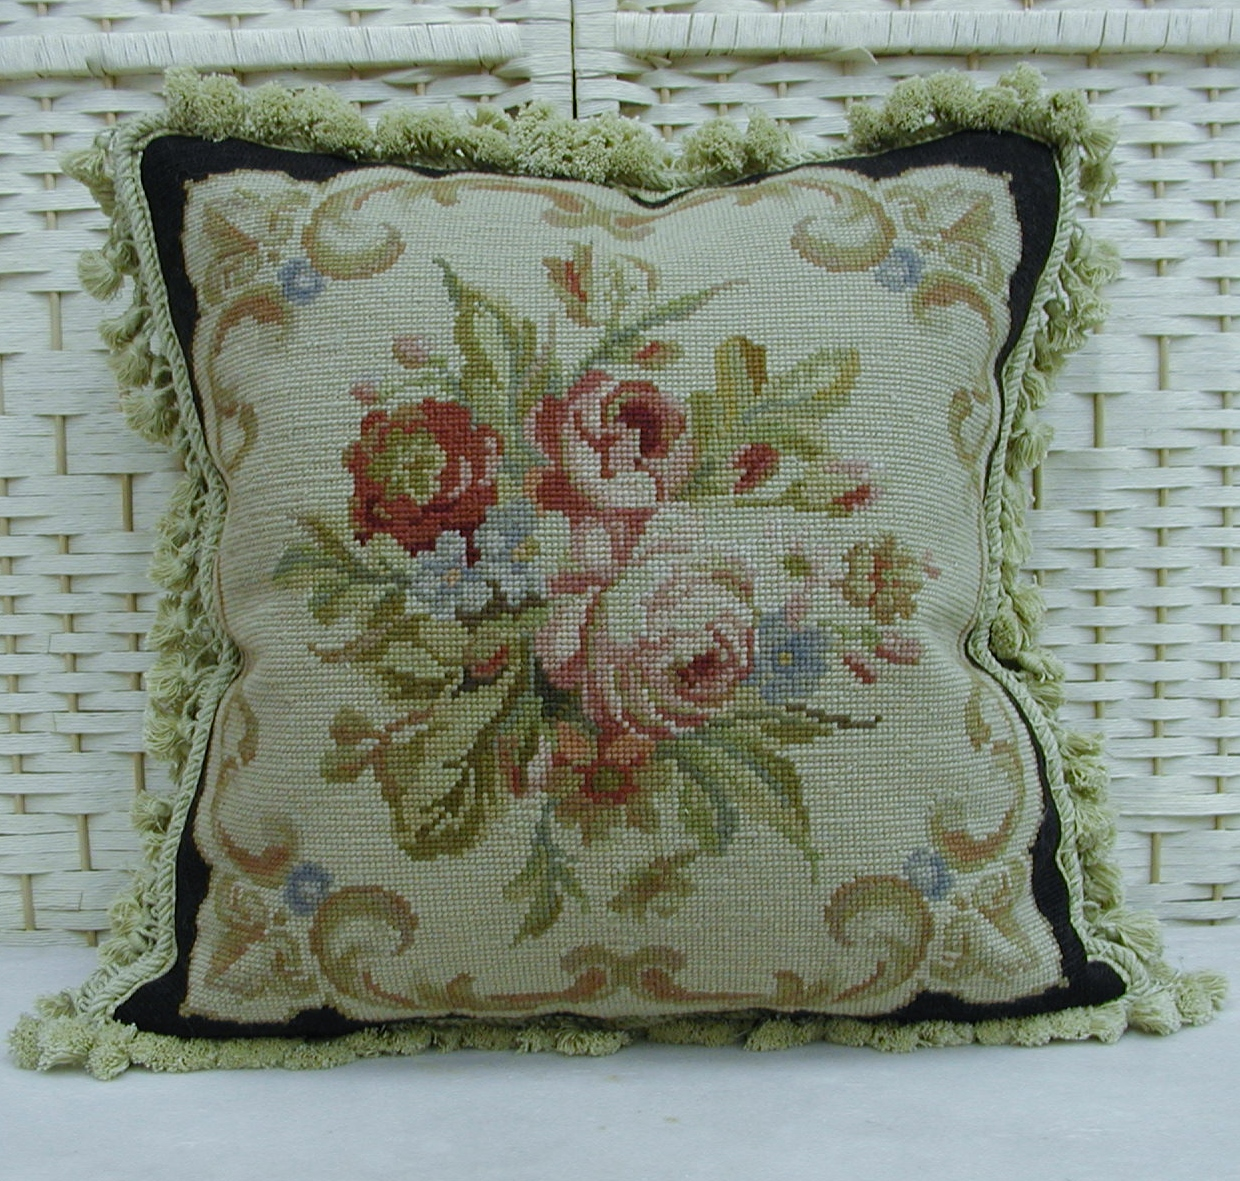 18″ x 18″ Handmade Roses Black Wool Needlepoint Cushion Cover Pillow Case 12980003